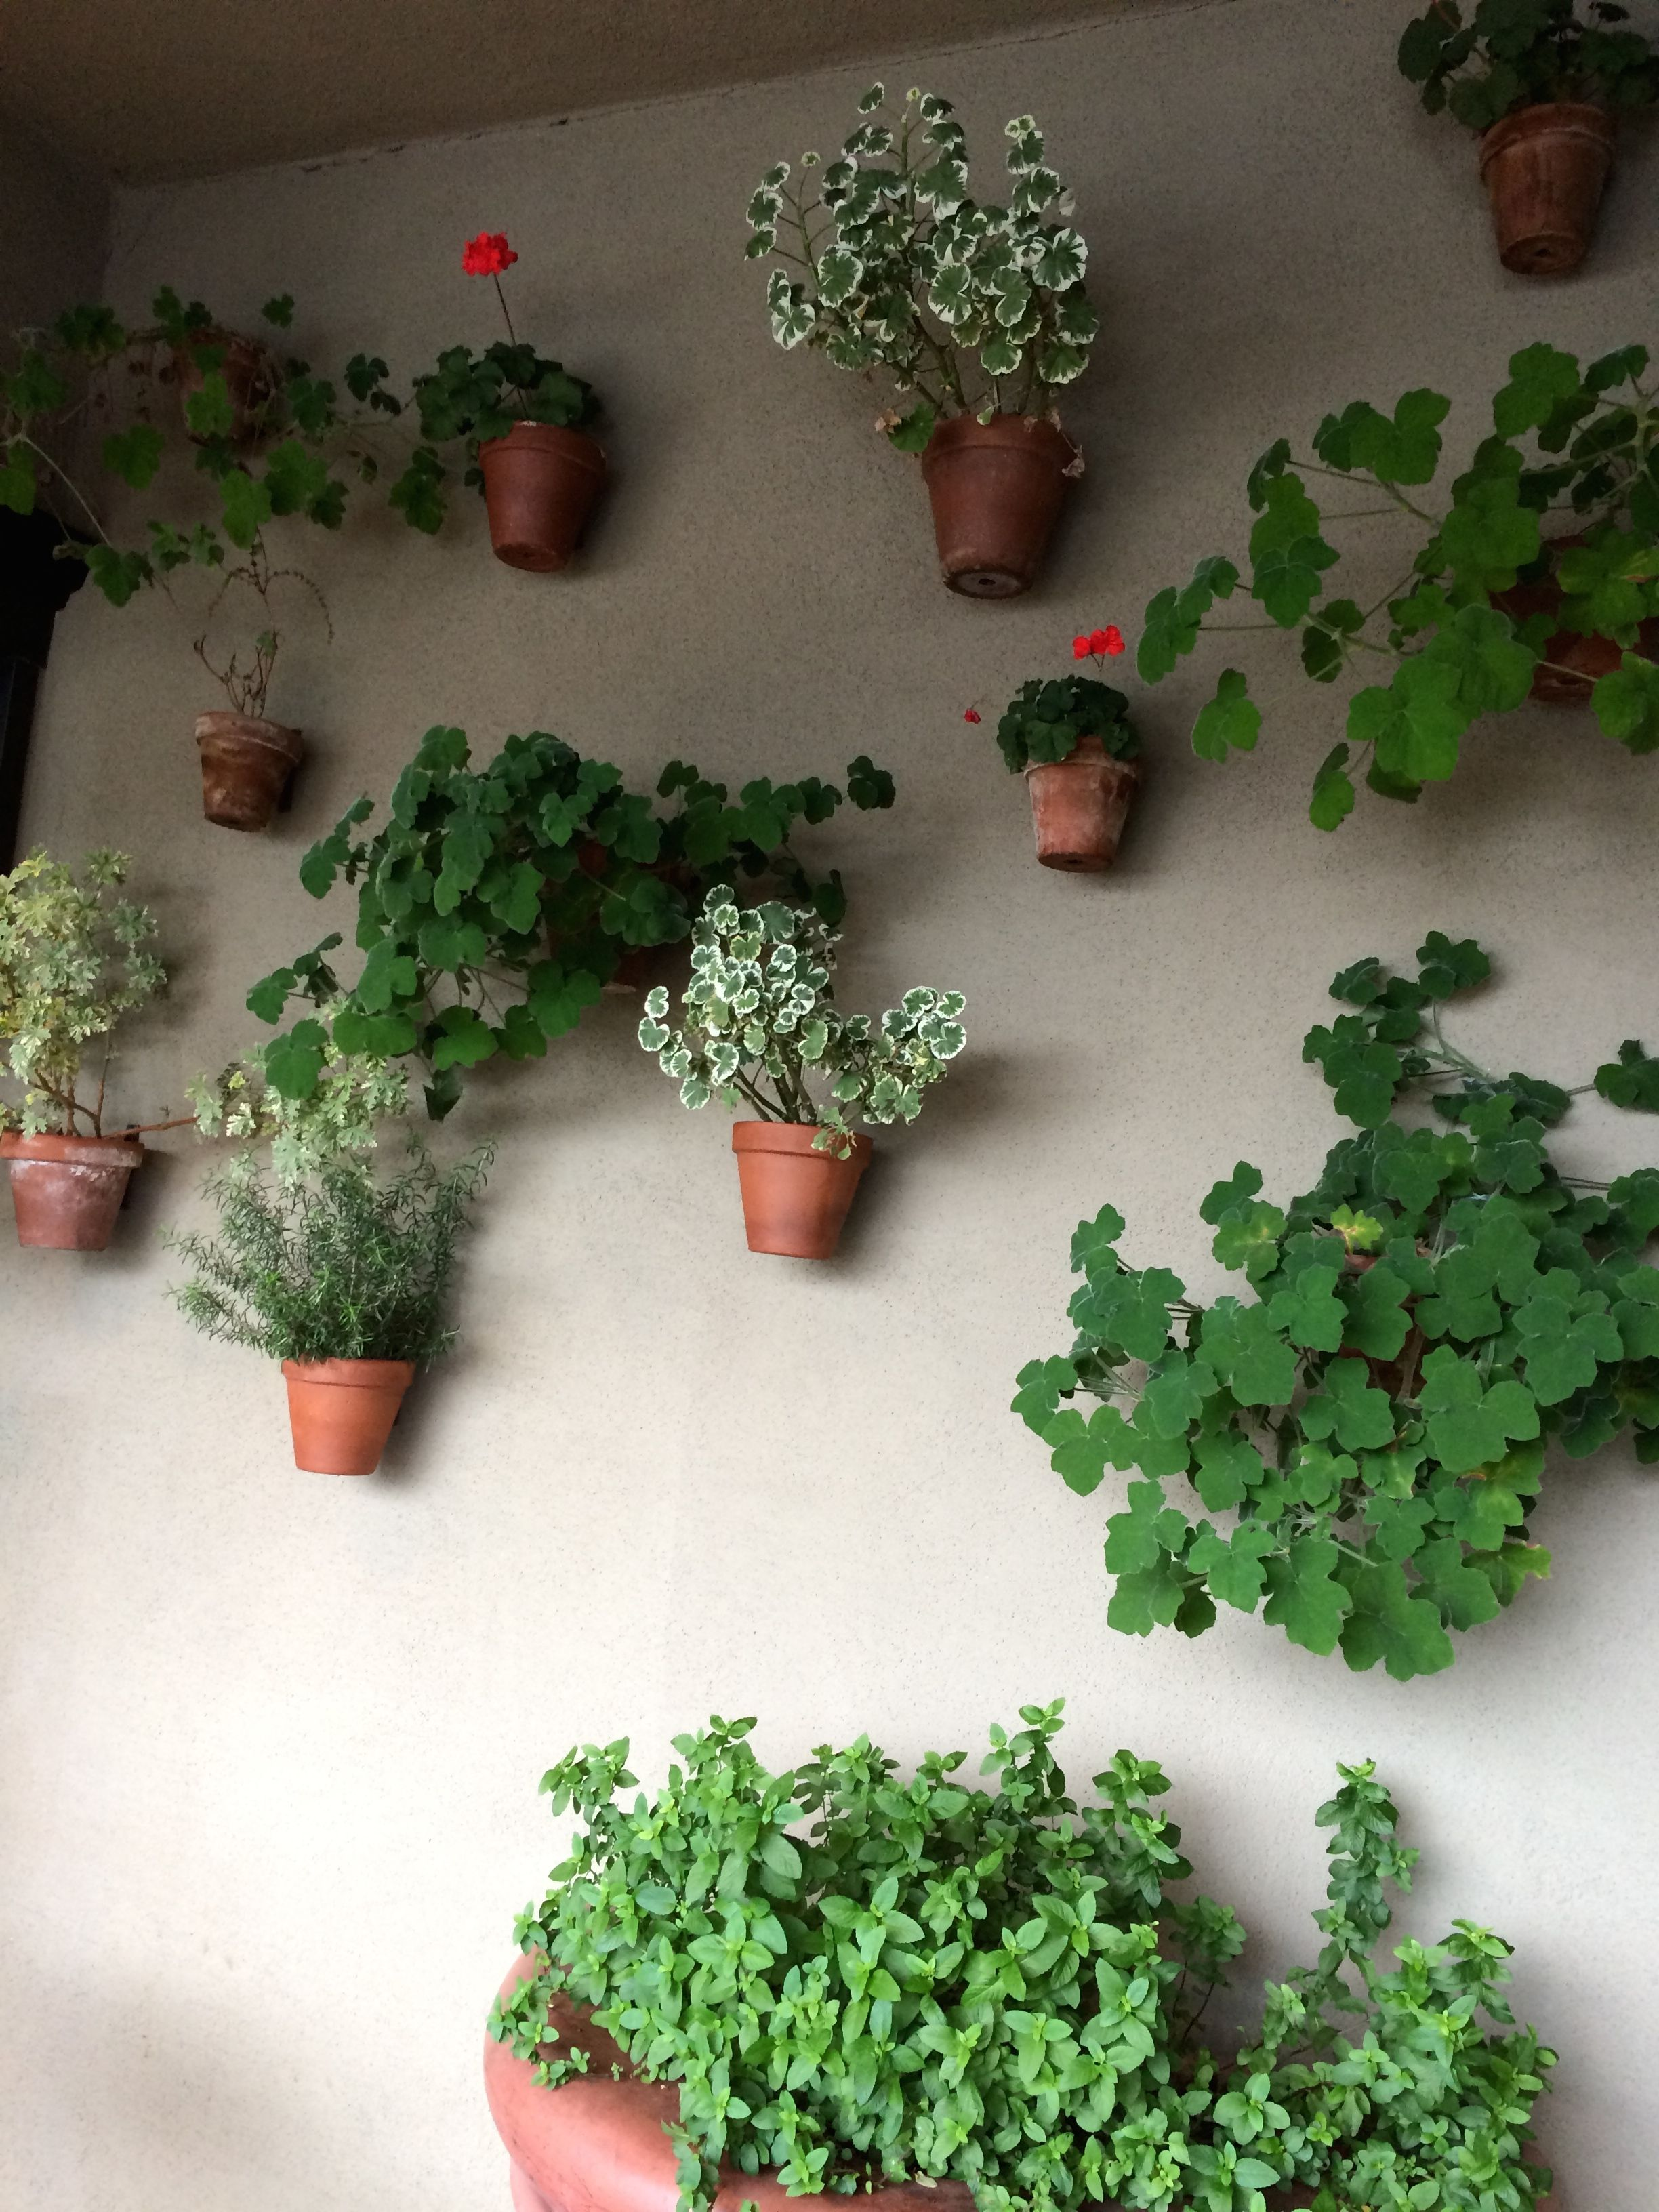 Stucco Wall Of Restaurant Plants In Clay Pots Hung With Hangapot Hangers California